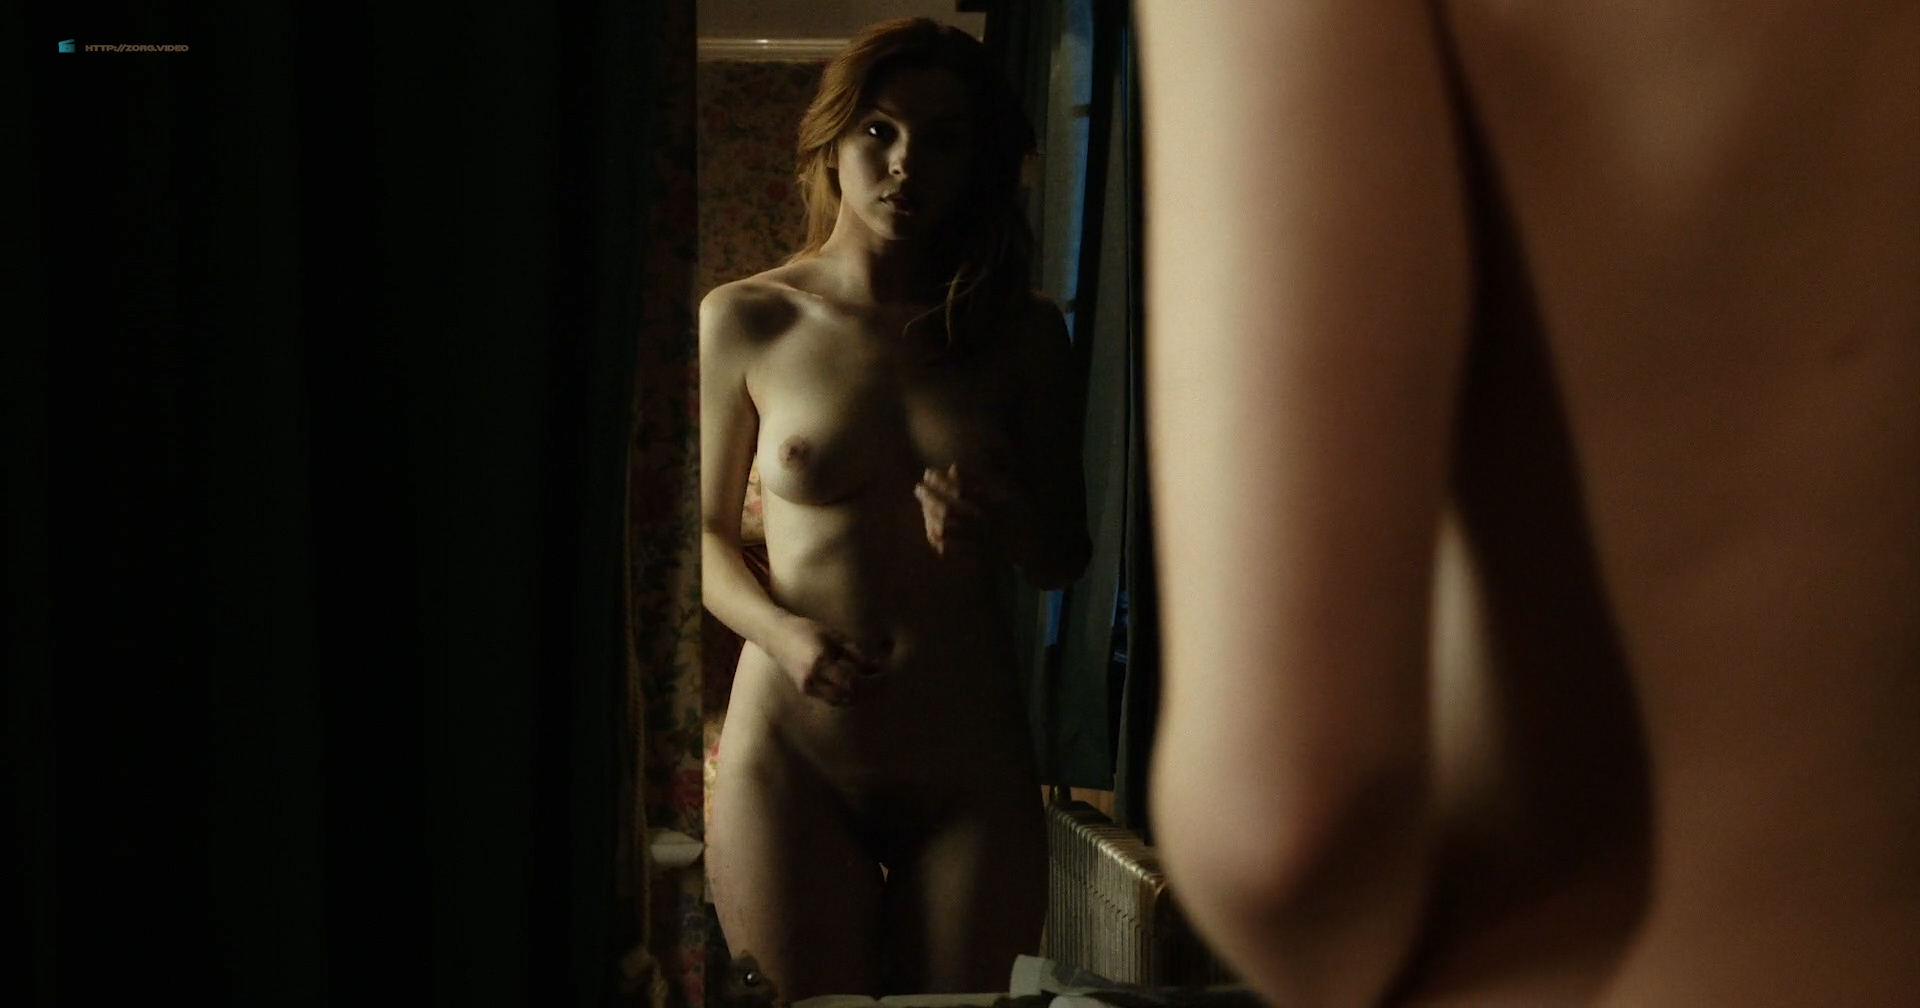 Aisling Knight nude full frontal and some sex - The Sitter (2017) HD 1080p (11)